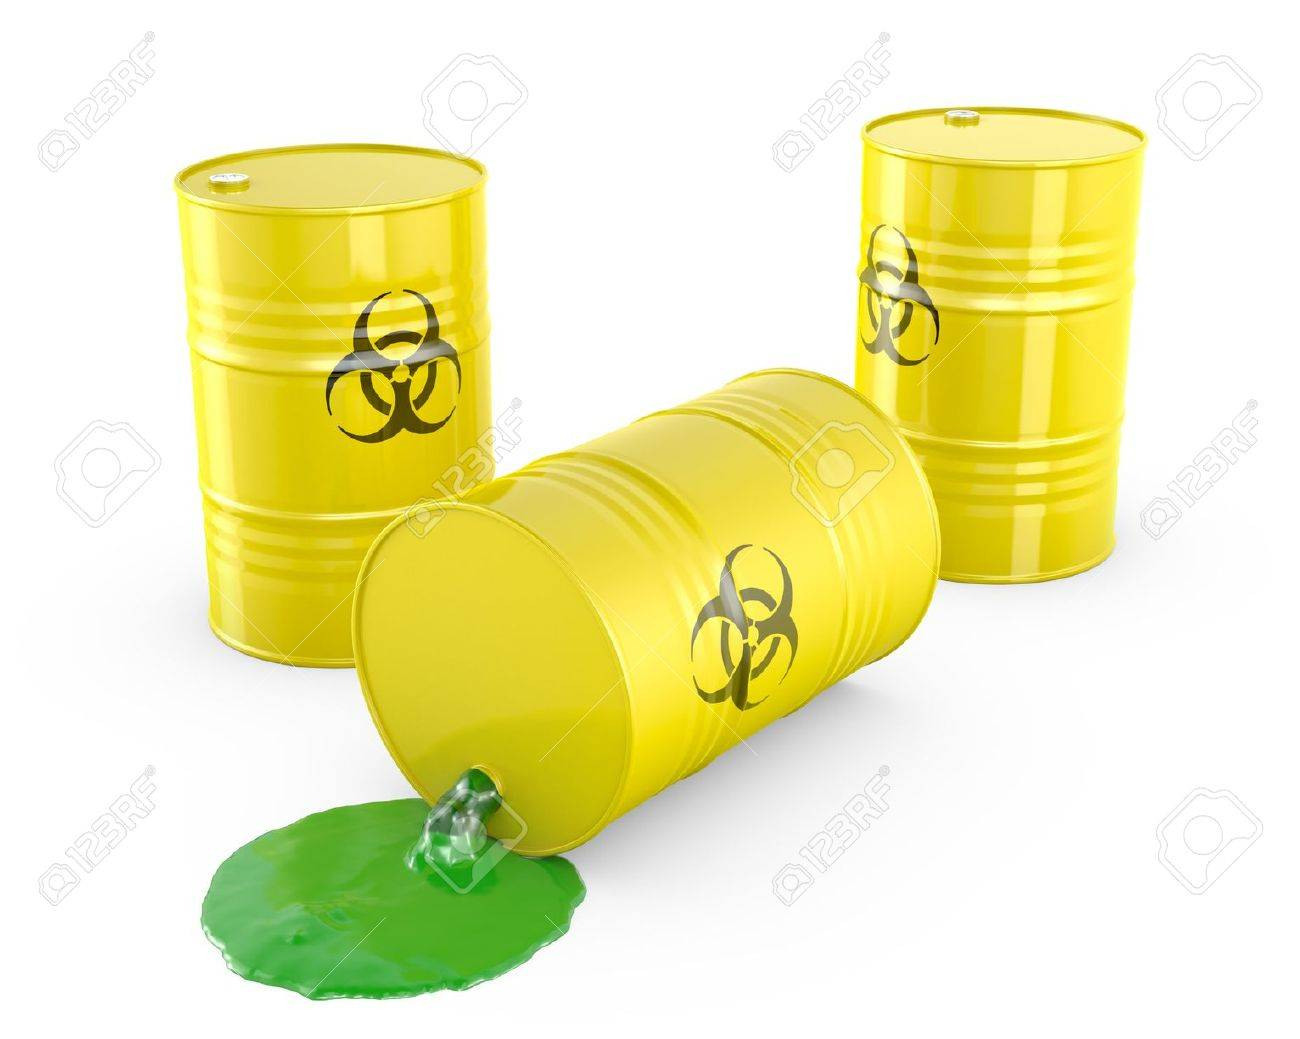 Toxic waste spilling from barrel, isolated on white background Stock Photo - 14839873